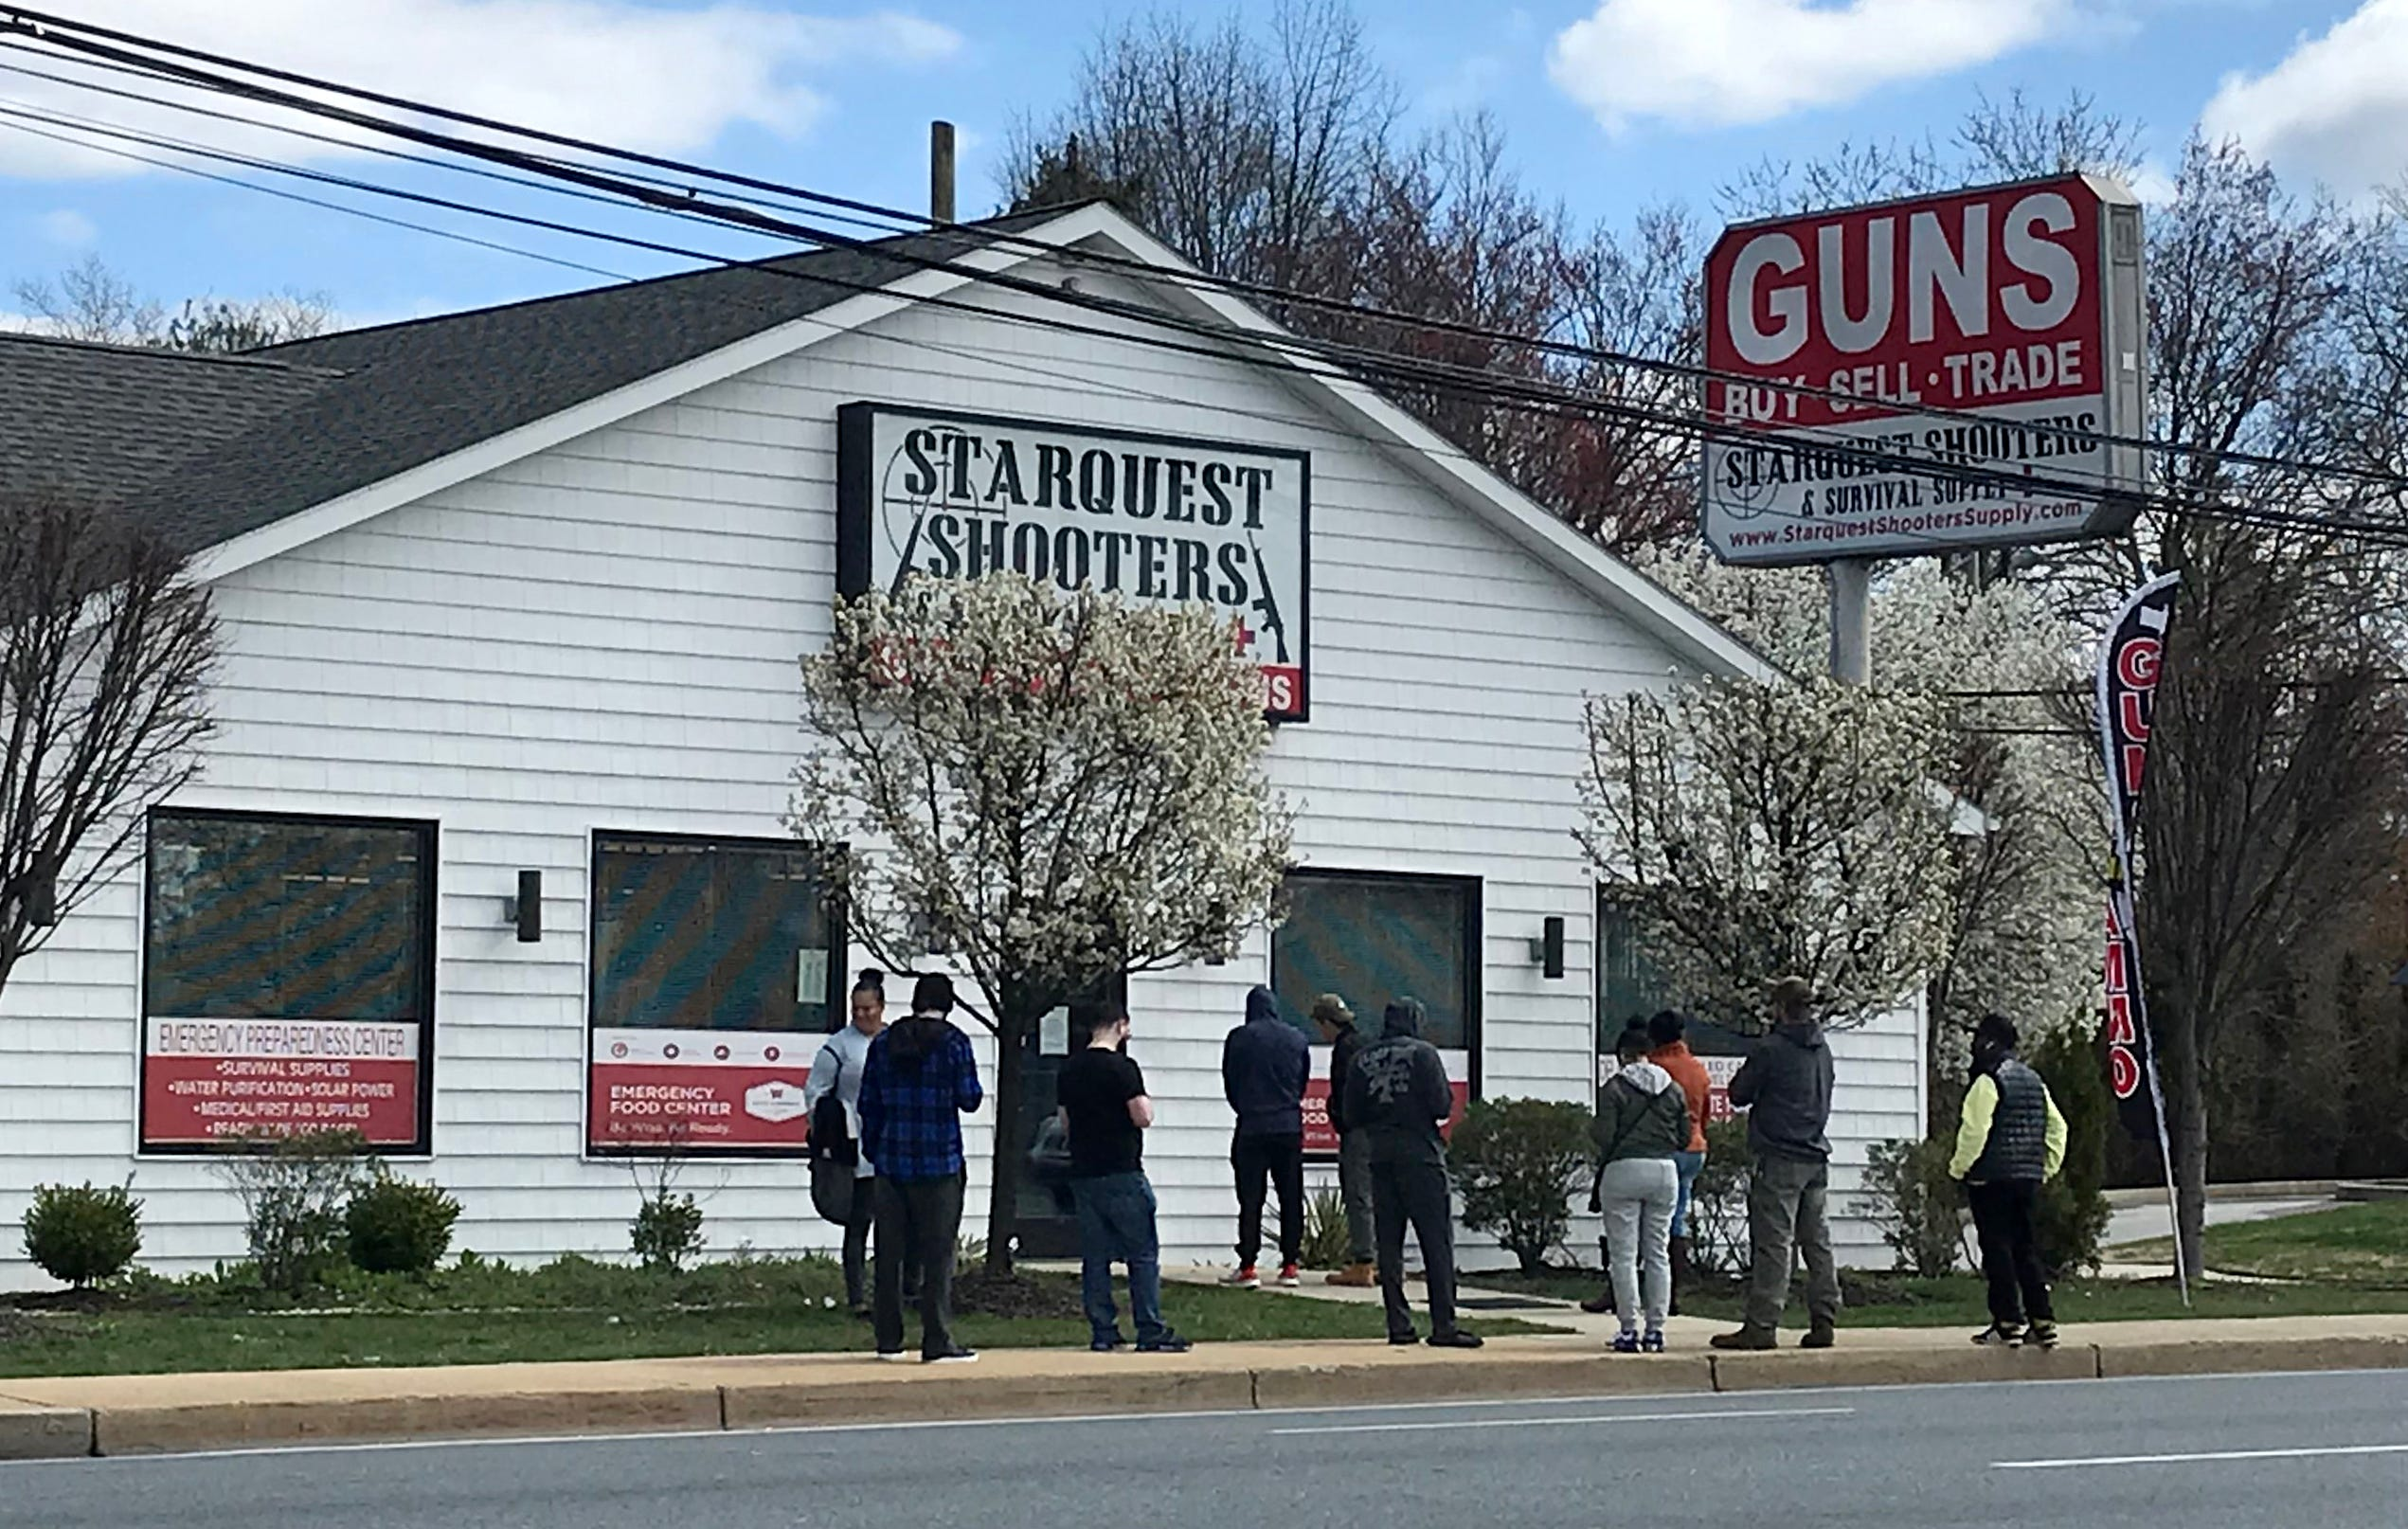 Gun shops defy Delaware order to close, which shoppers say violates 2nd Amendment rights